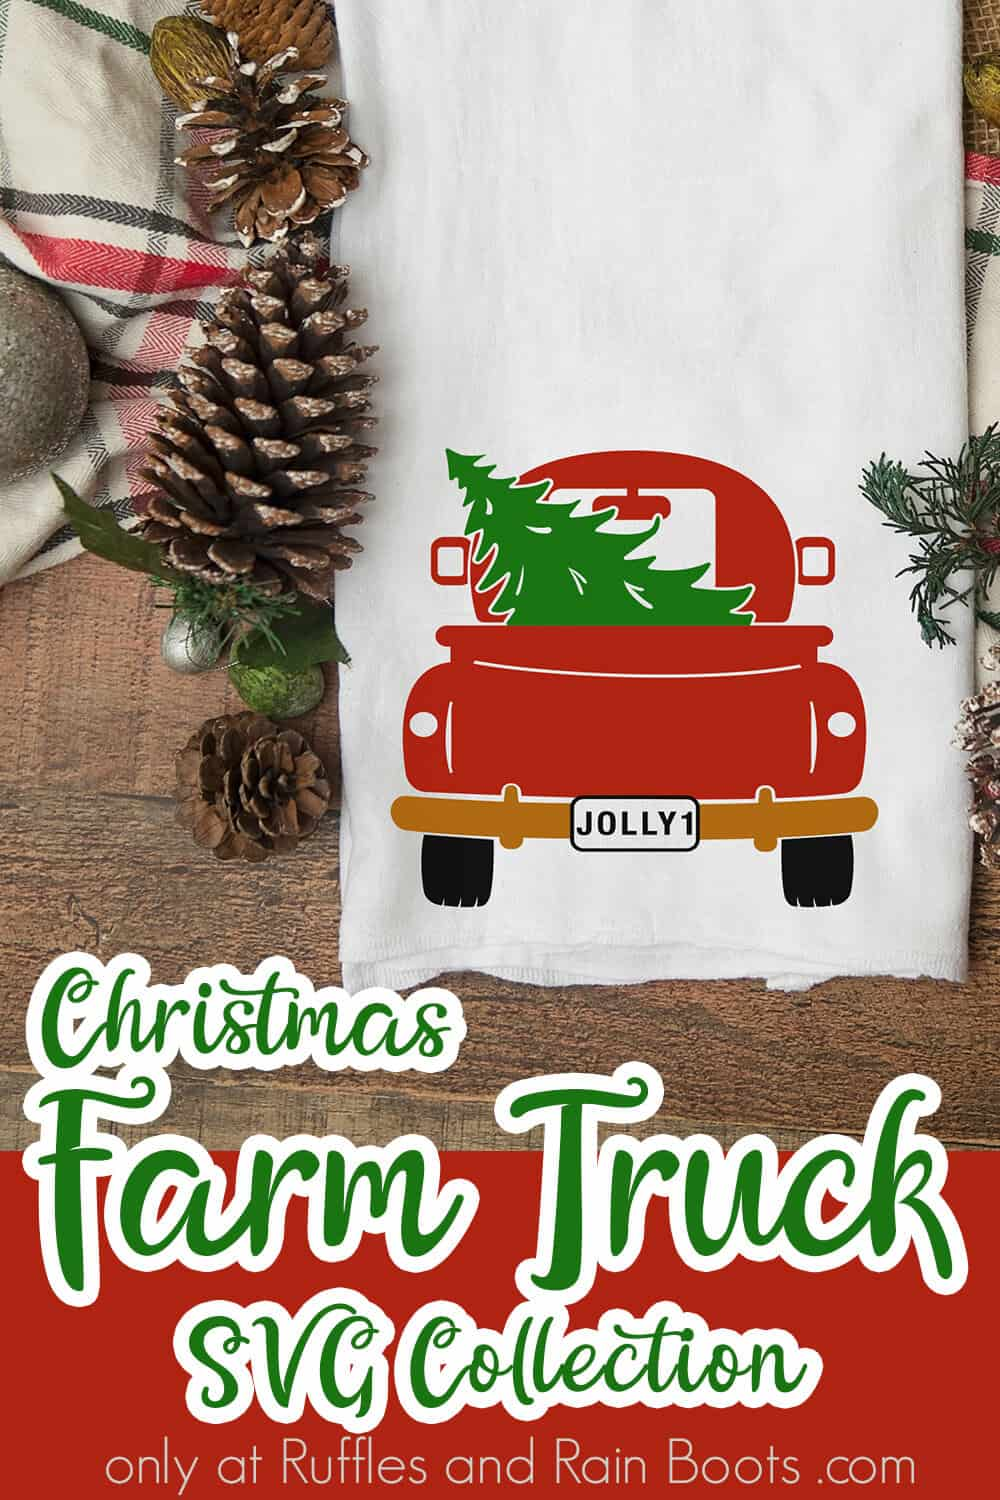 kitchen towel with christmas farmtruck SVG file with text which reads Christmas farm truck svg collection